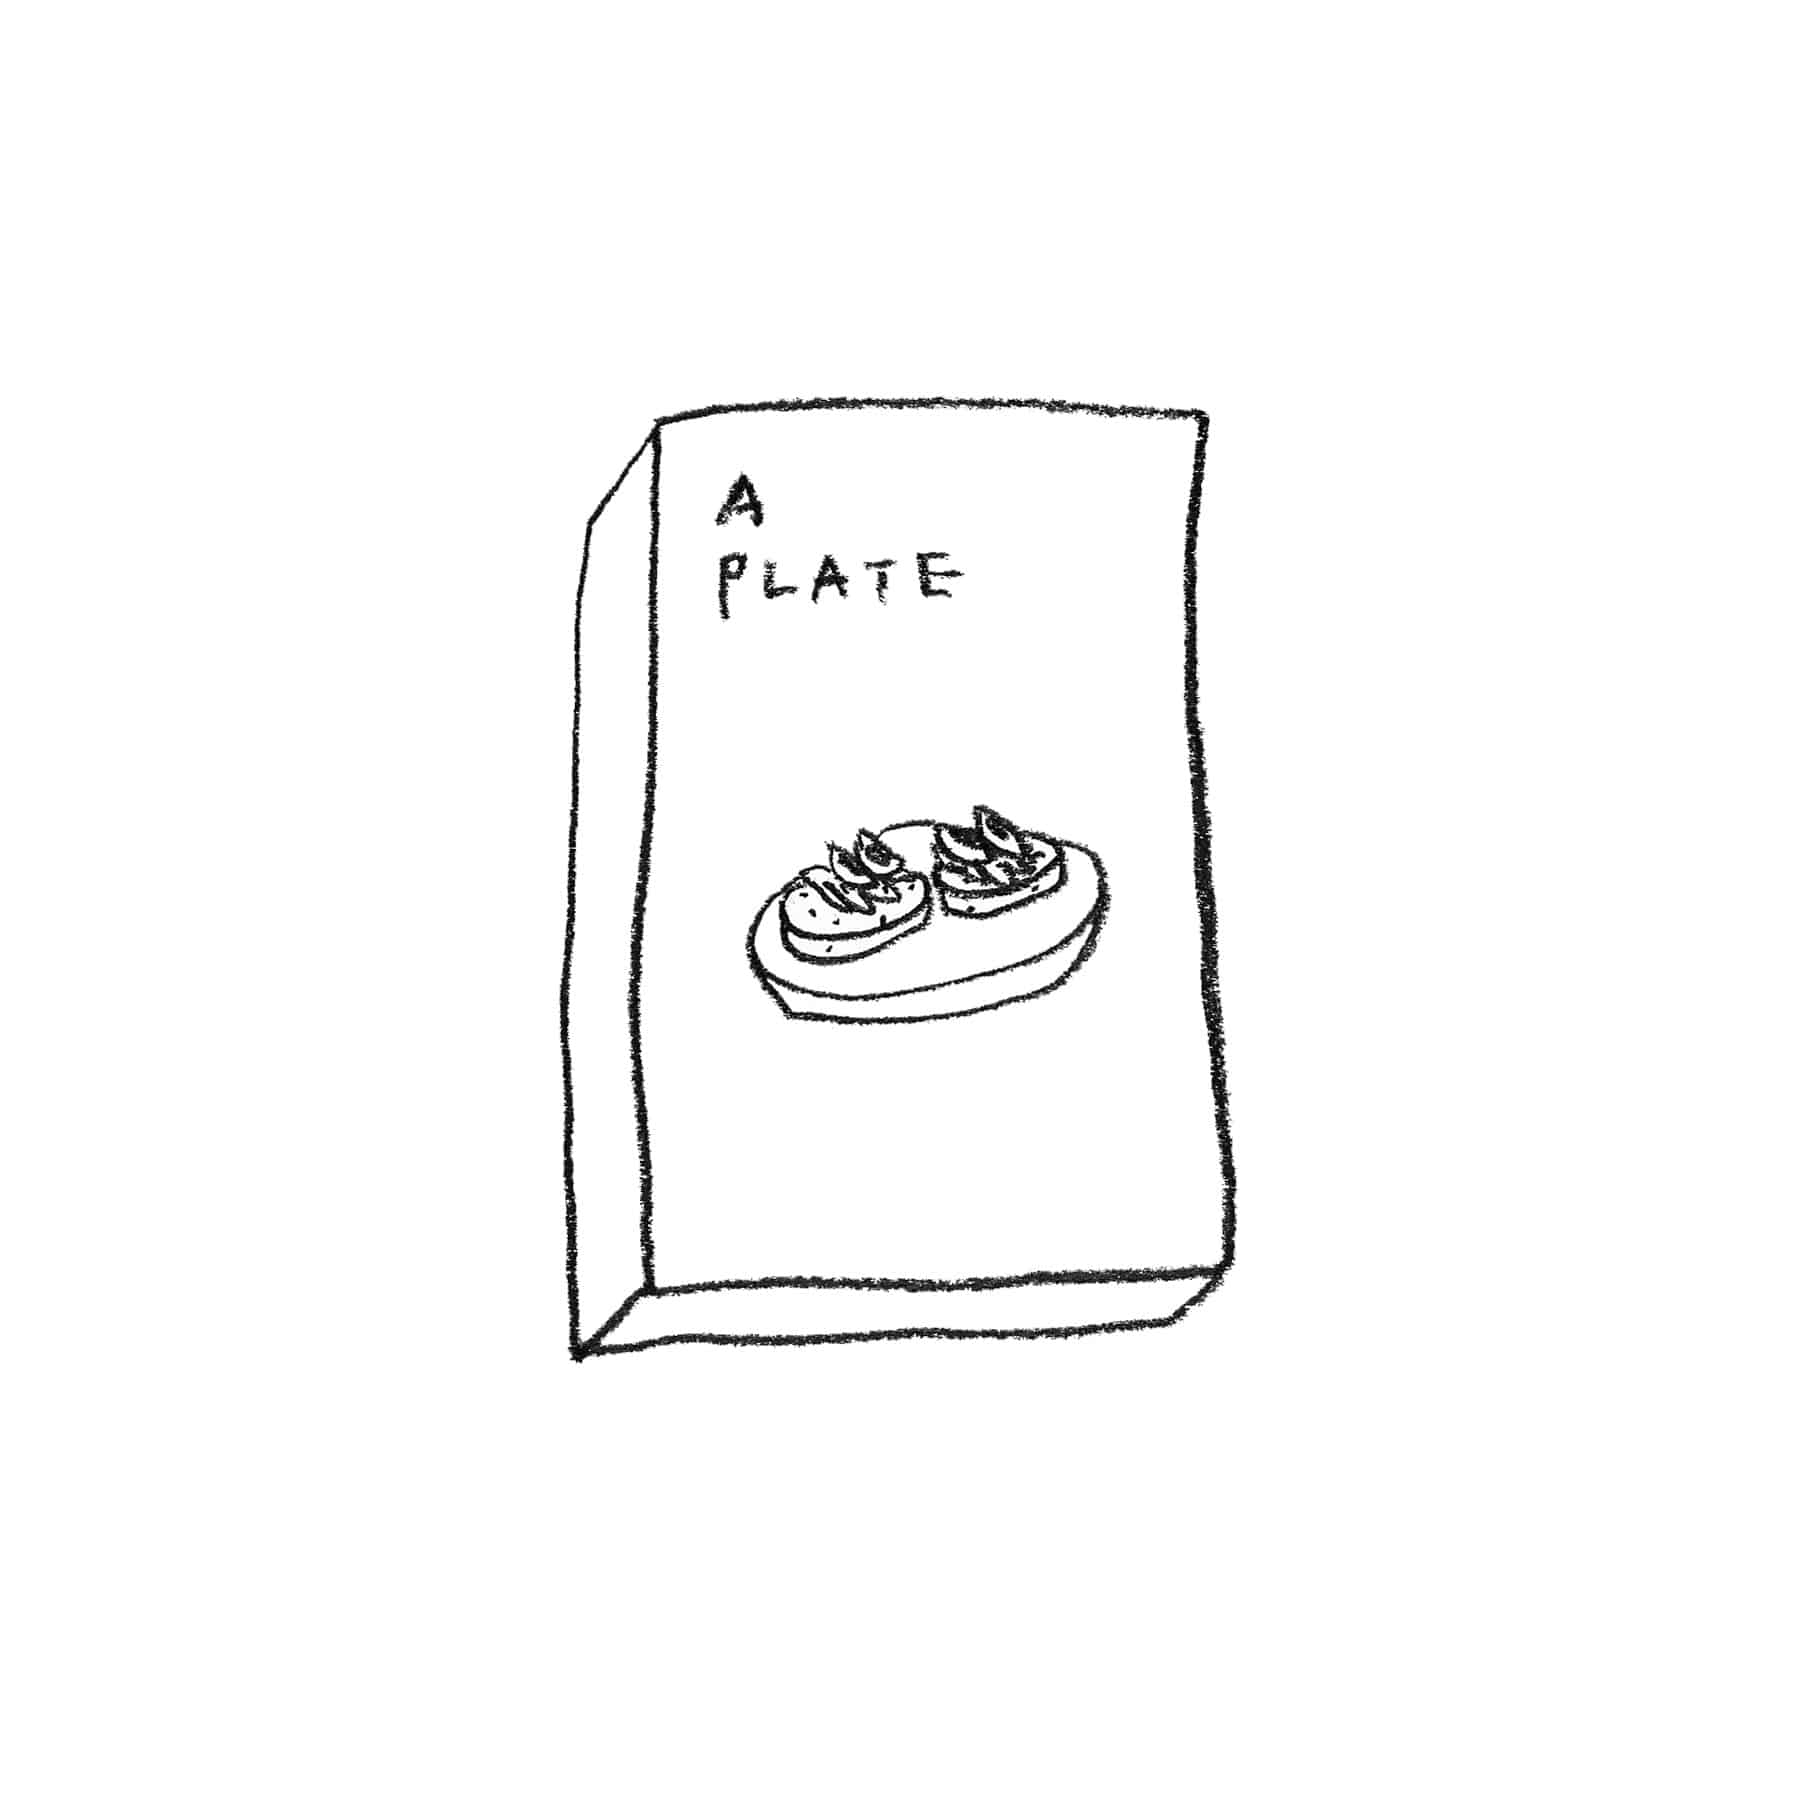 A PLATE